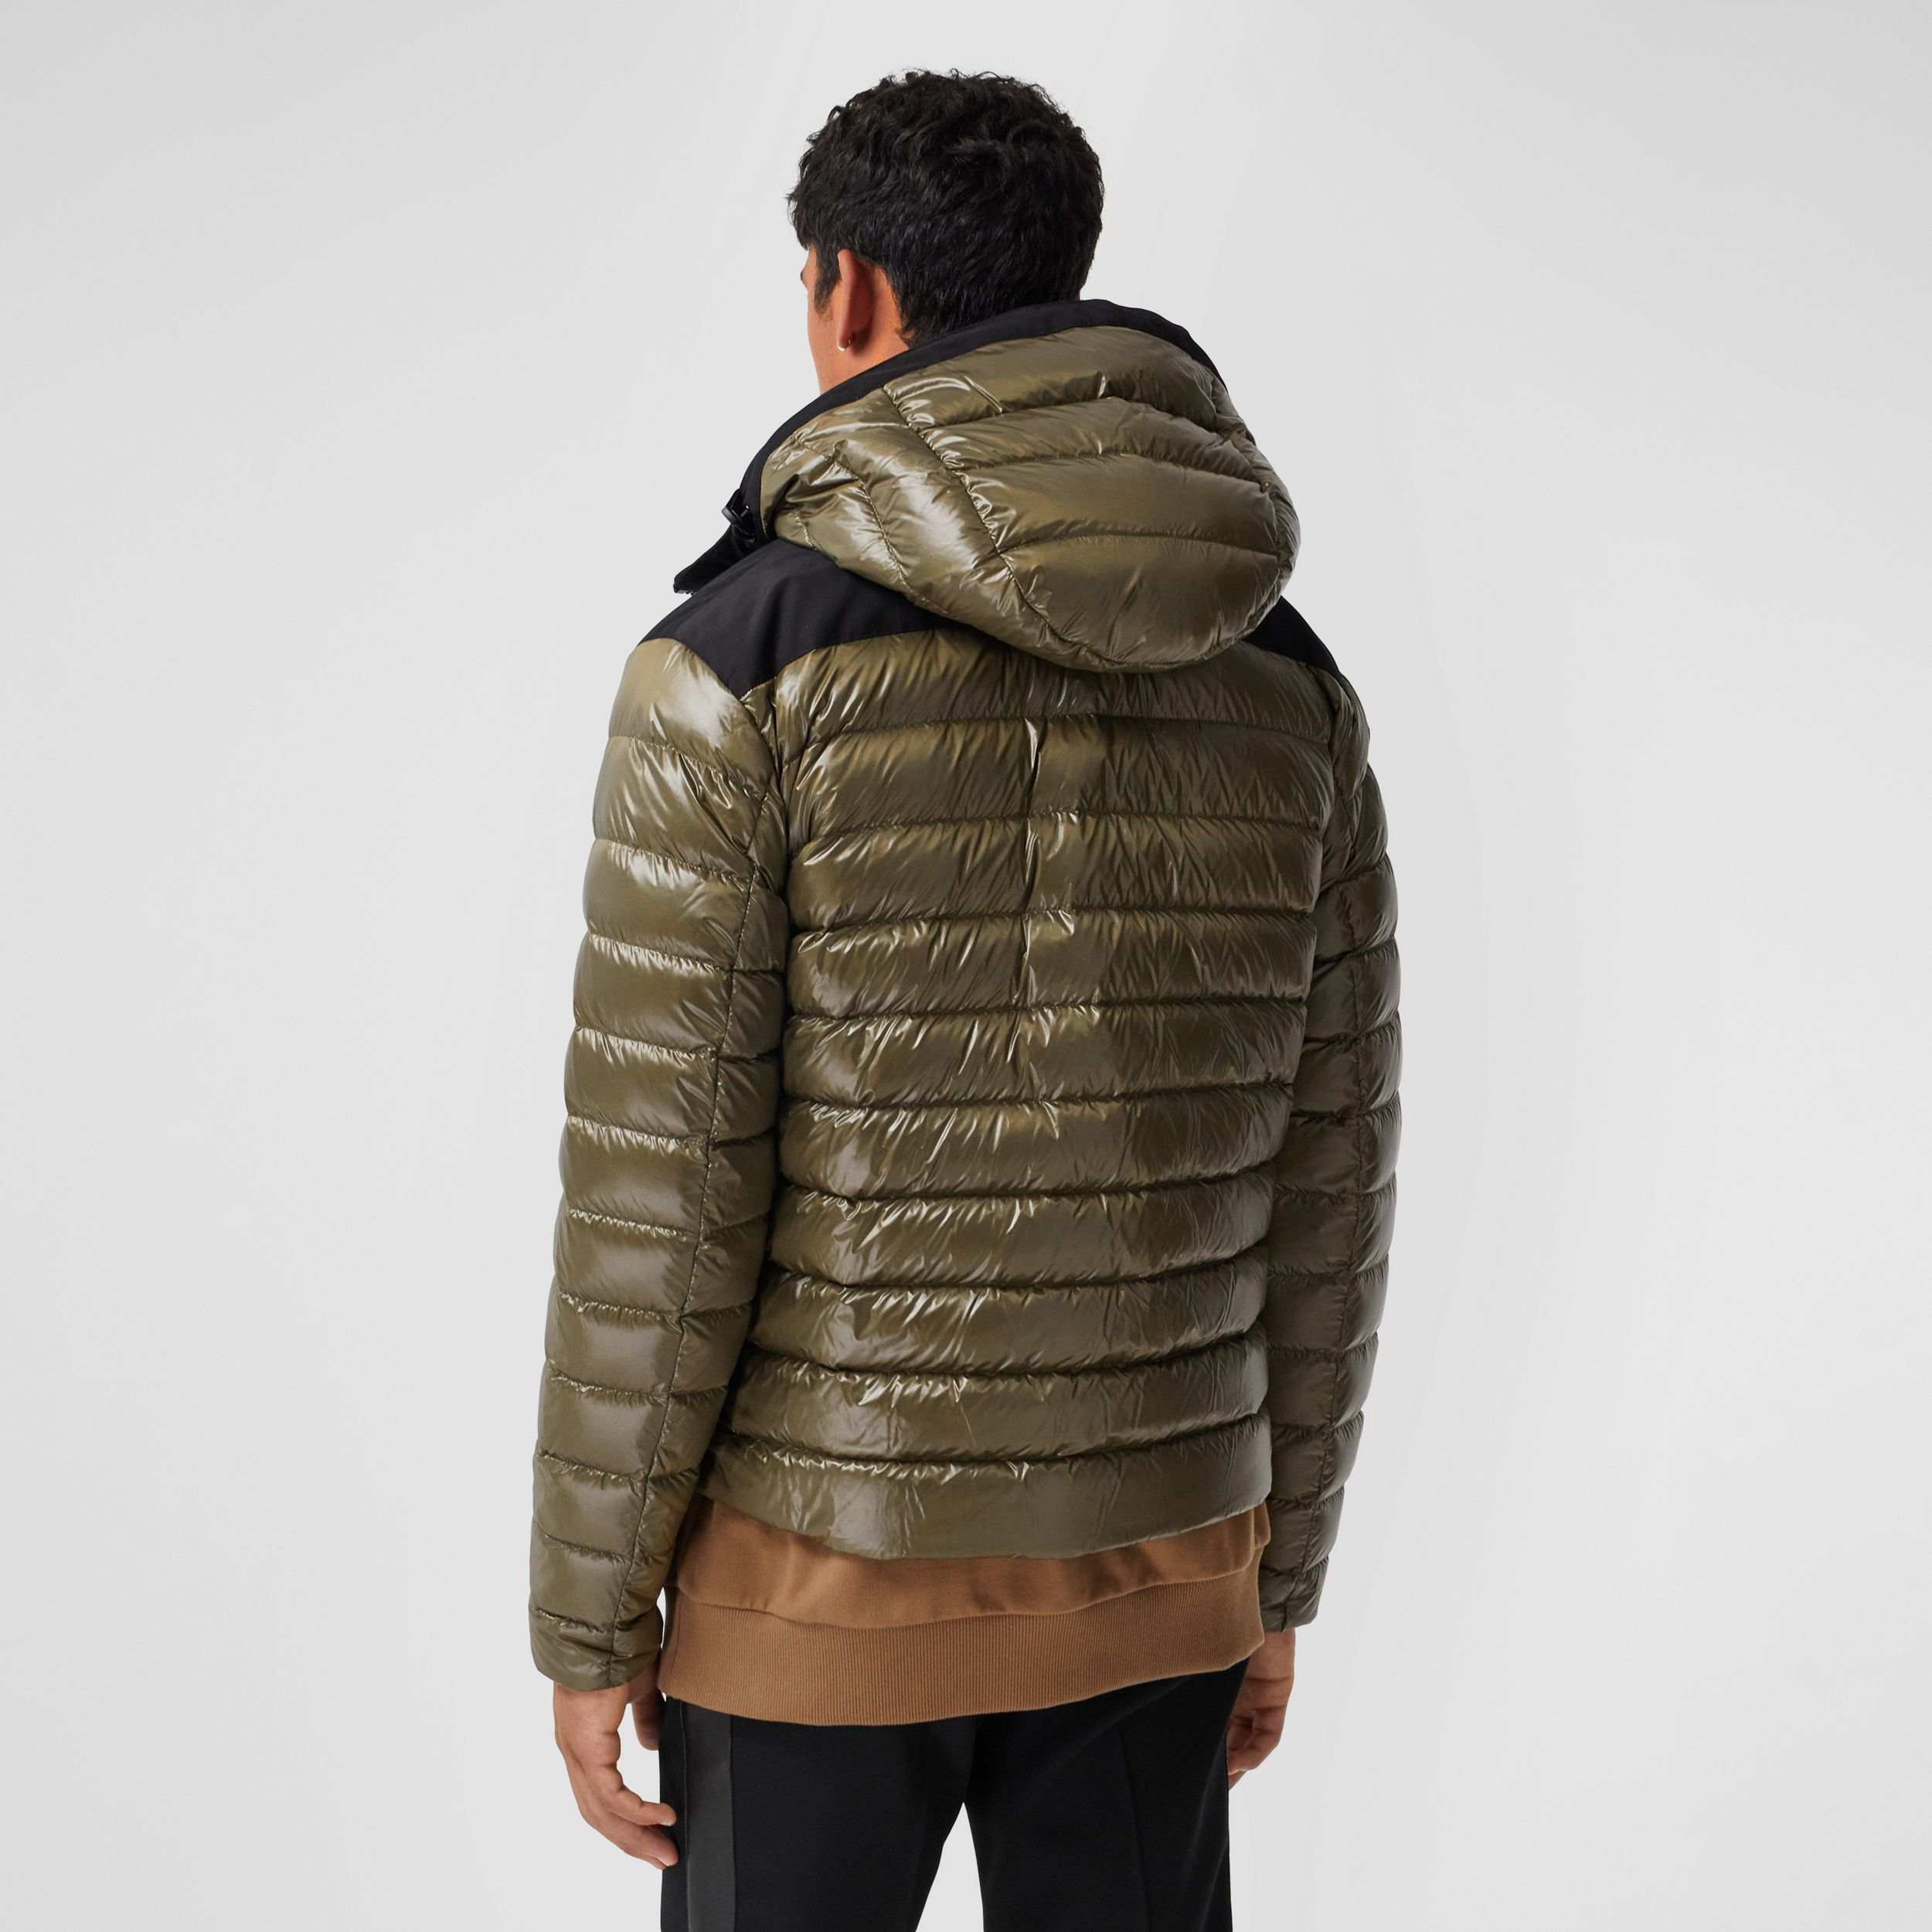 Location Print Hooded Puffer Jacket in Olive - Men | Burberry Australia - 3